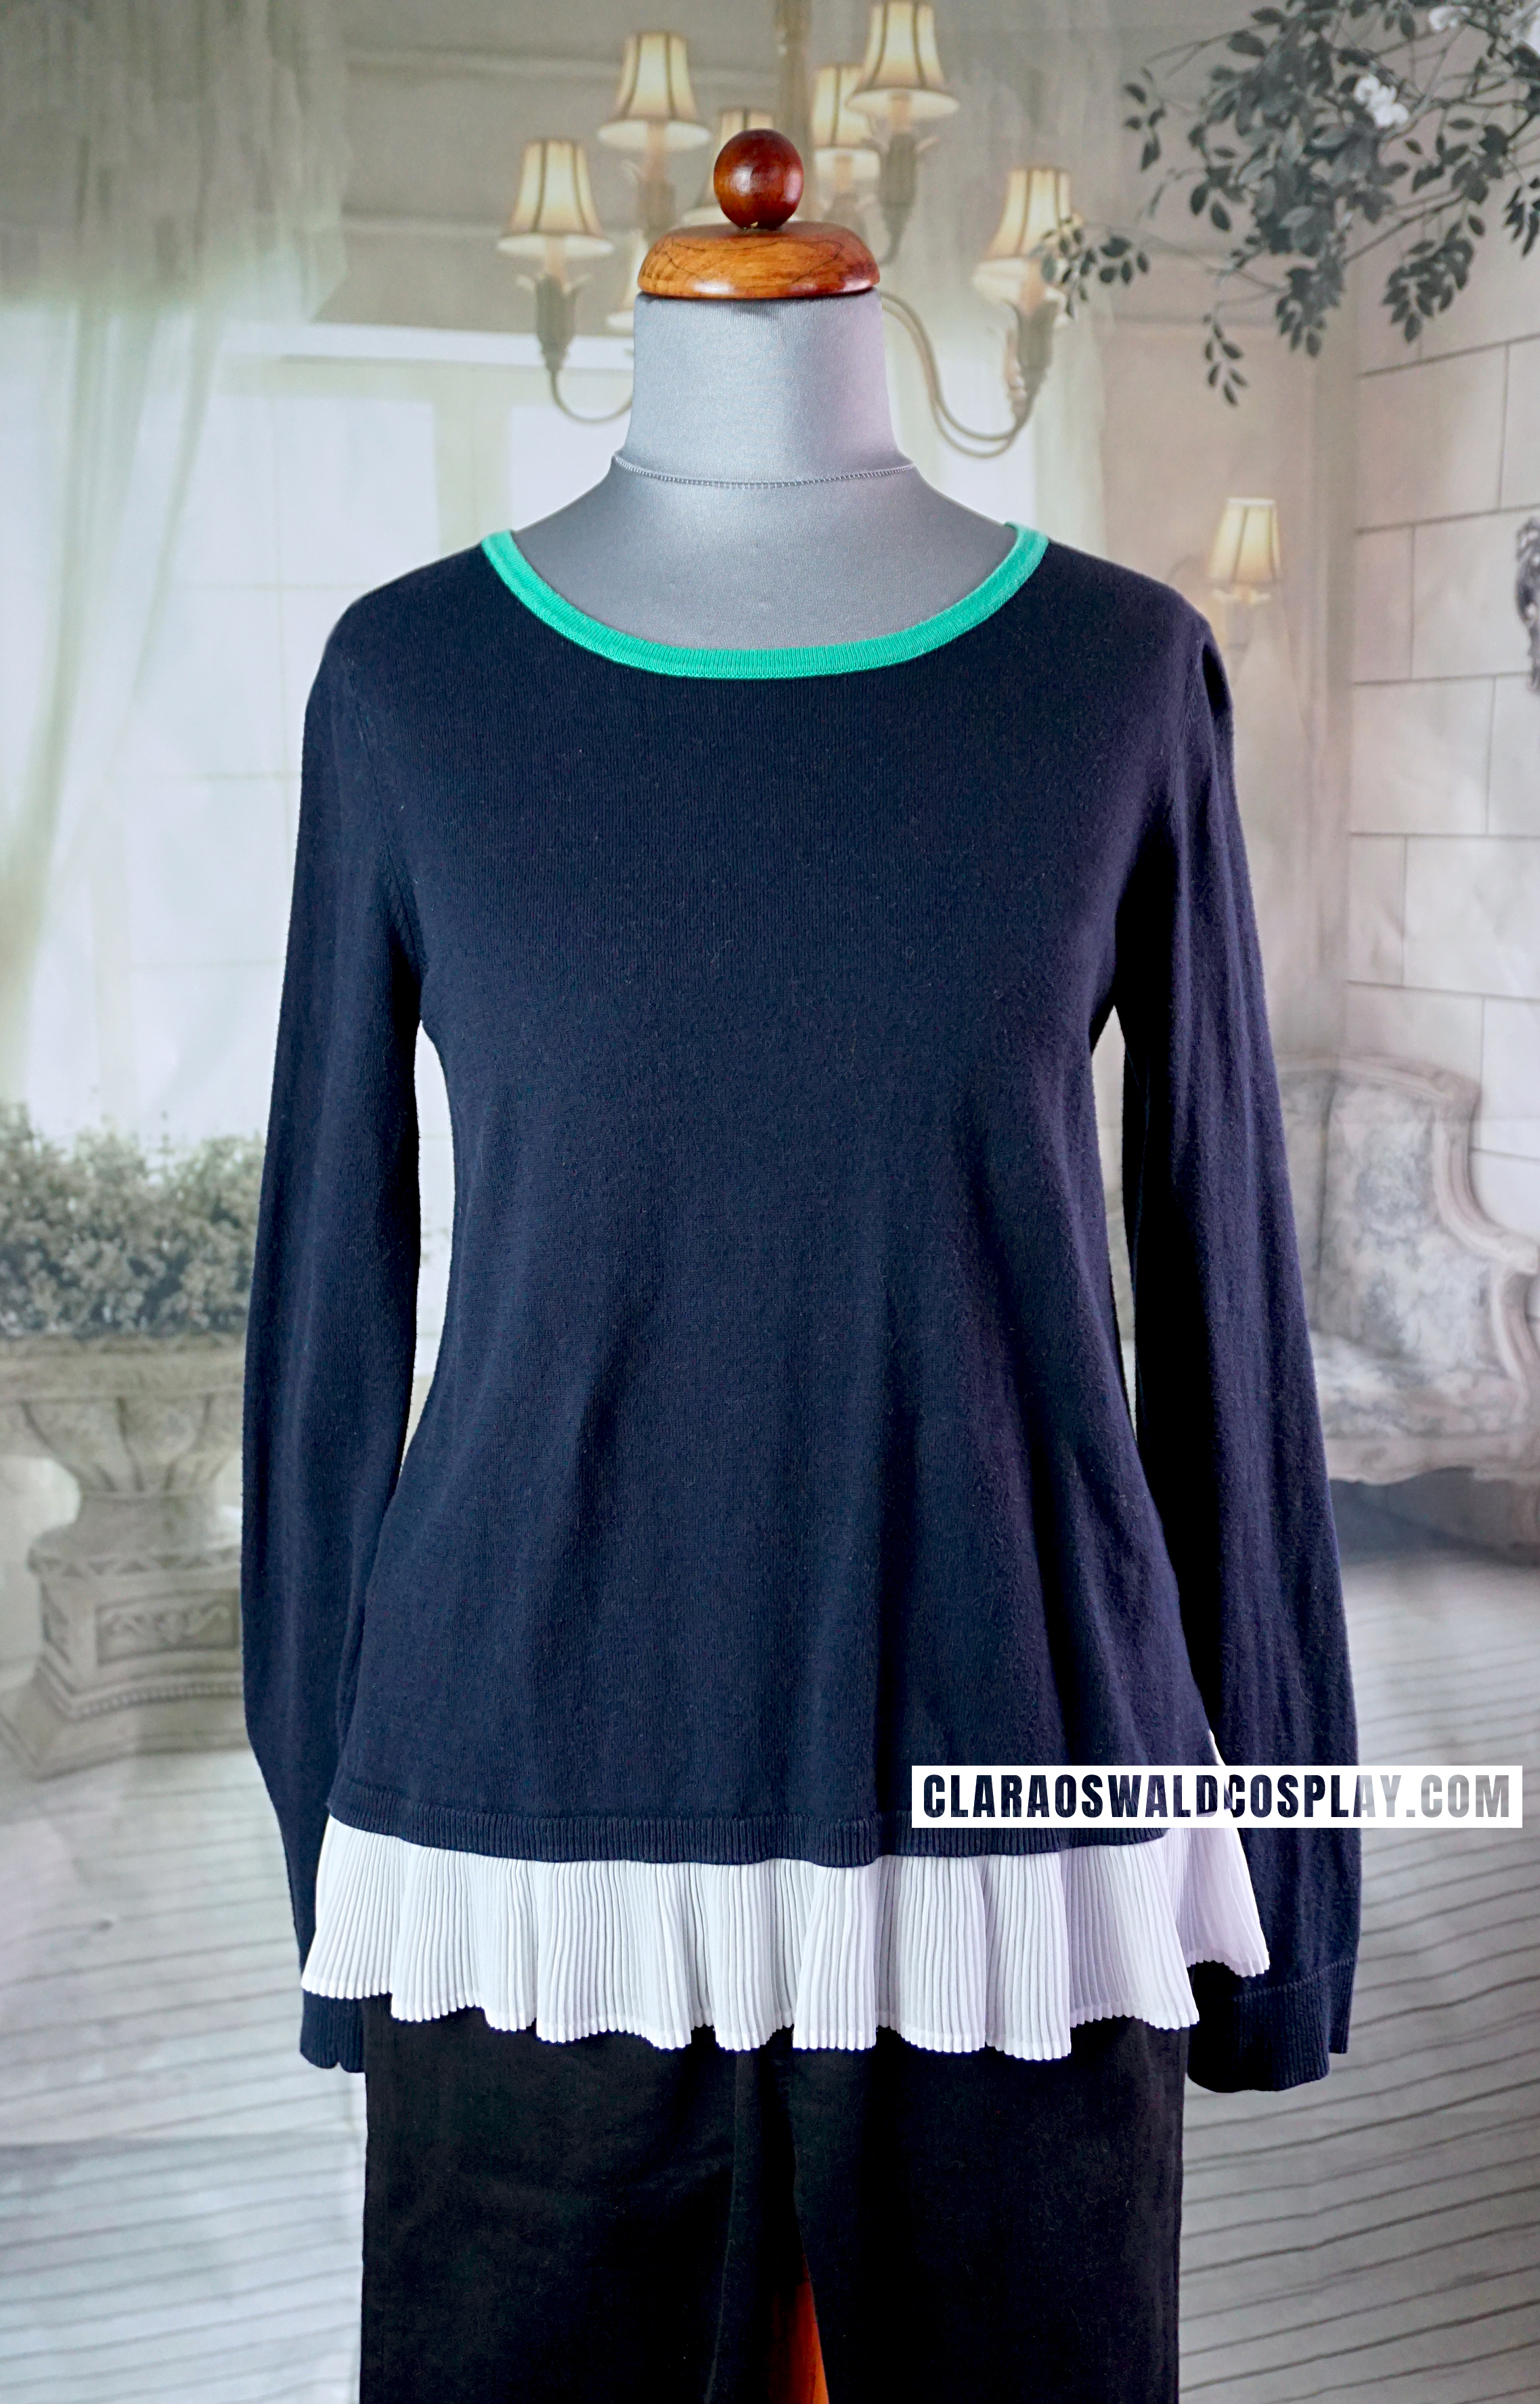 A closer look at the Claudie Pierlot Frill Jumper. It looks black in many photos but is actually a dark navy.